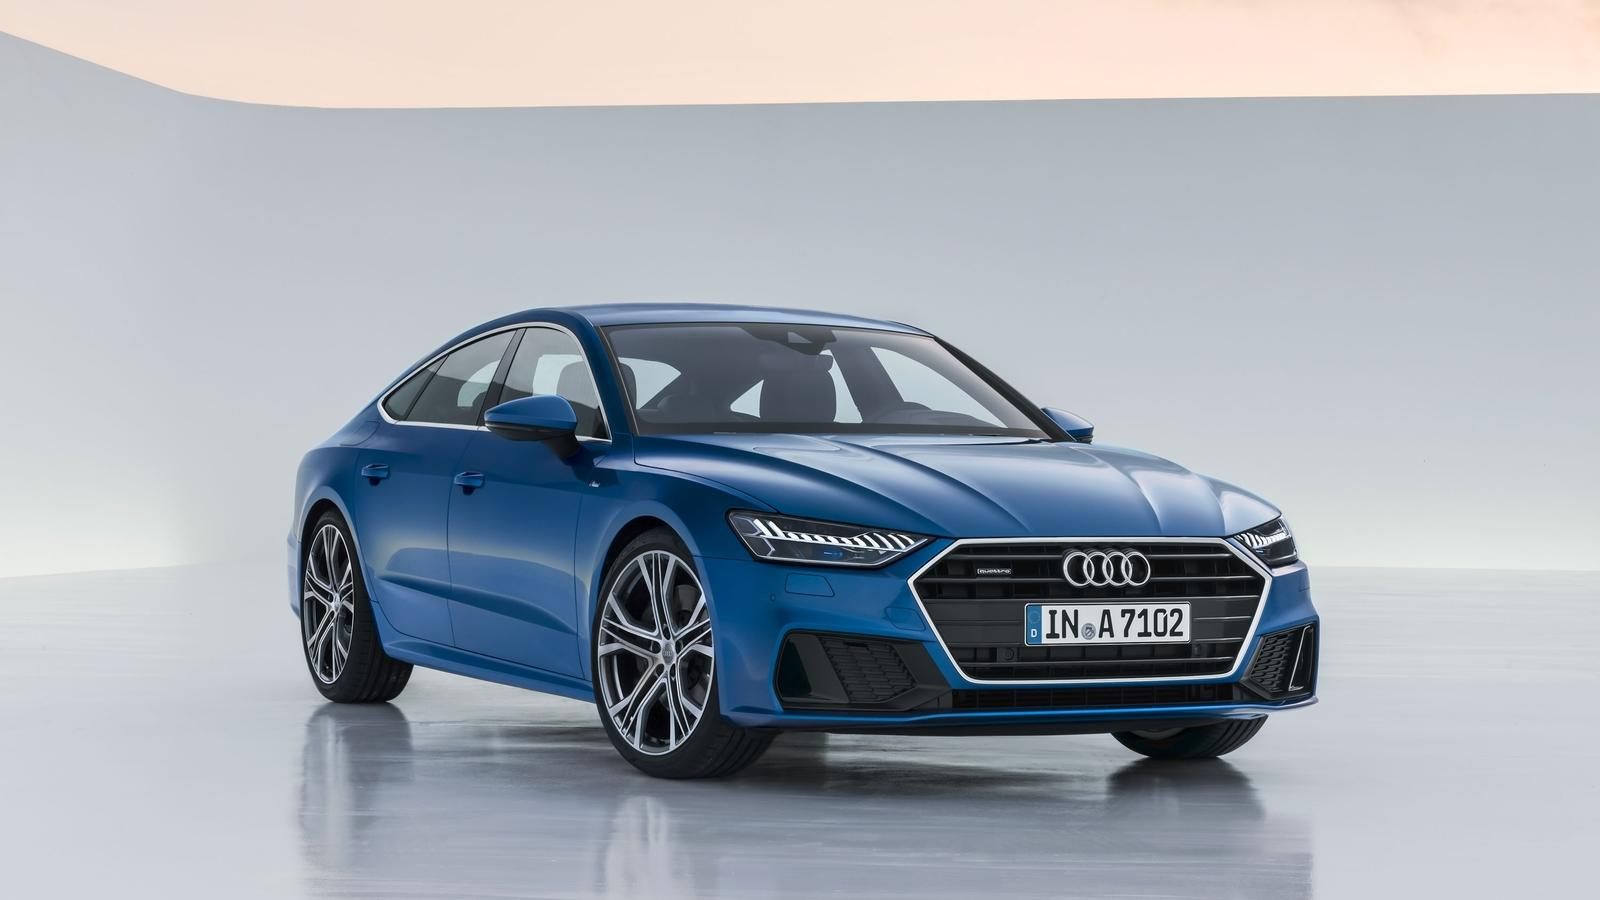 2019 audi a7 review top speed. Black Bedroom Furniture Sets. Home Design Ideas